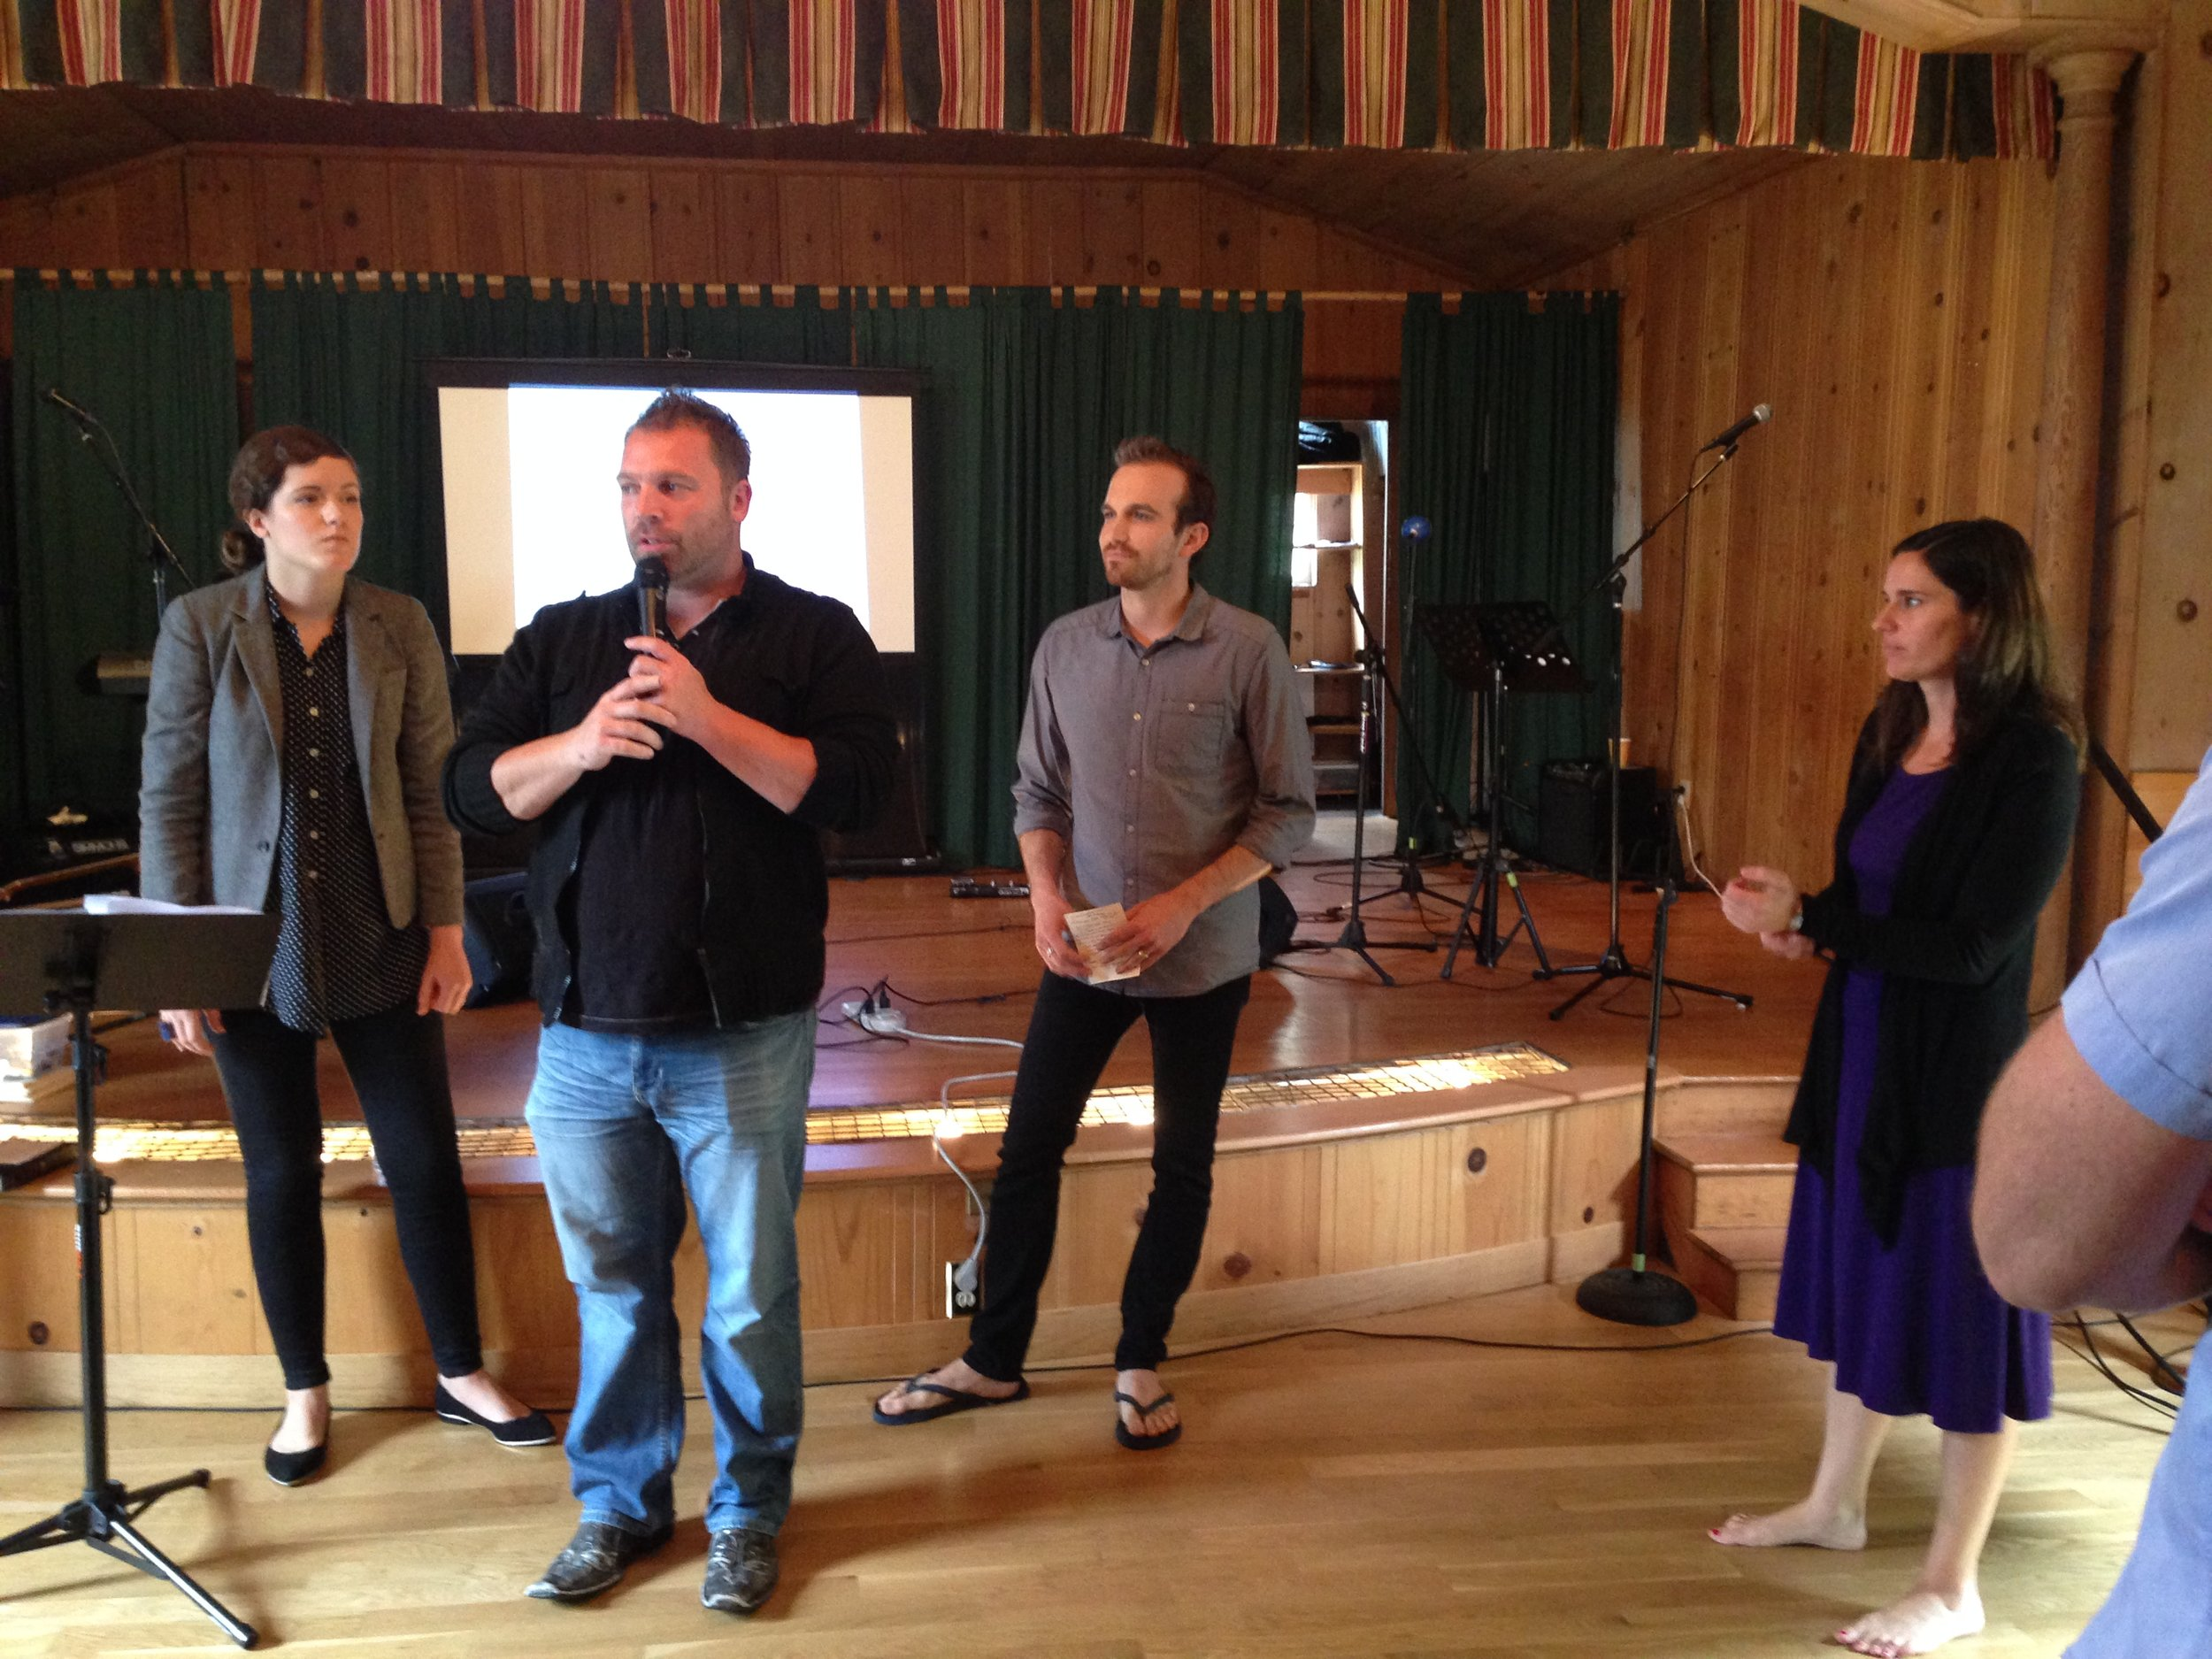 Jenny and James ministering with lead pastor Jake.